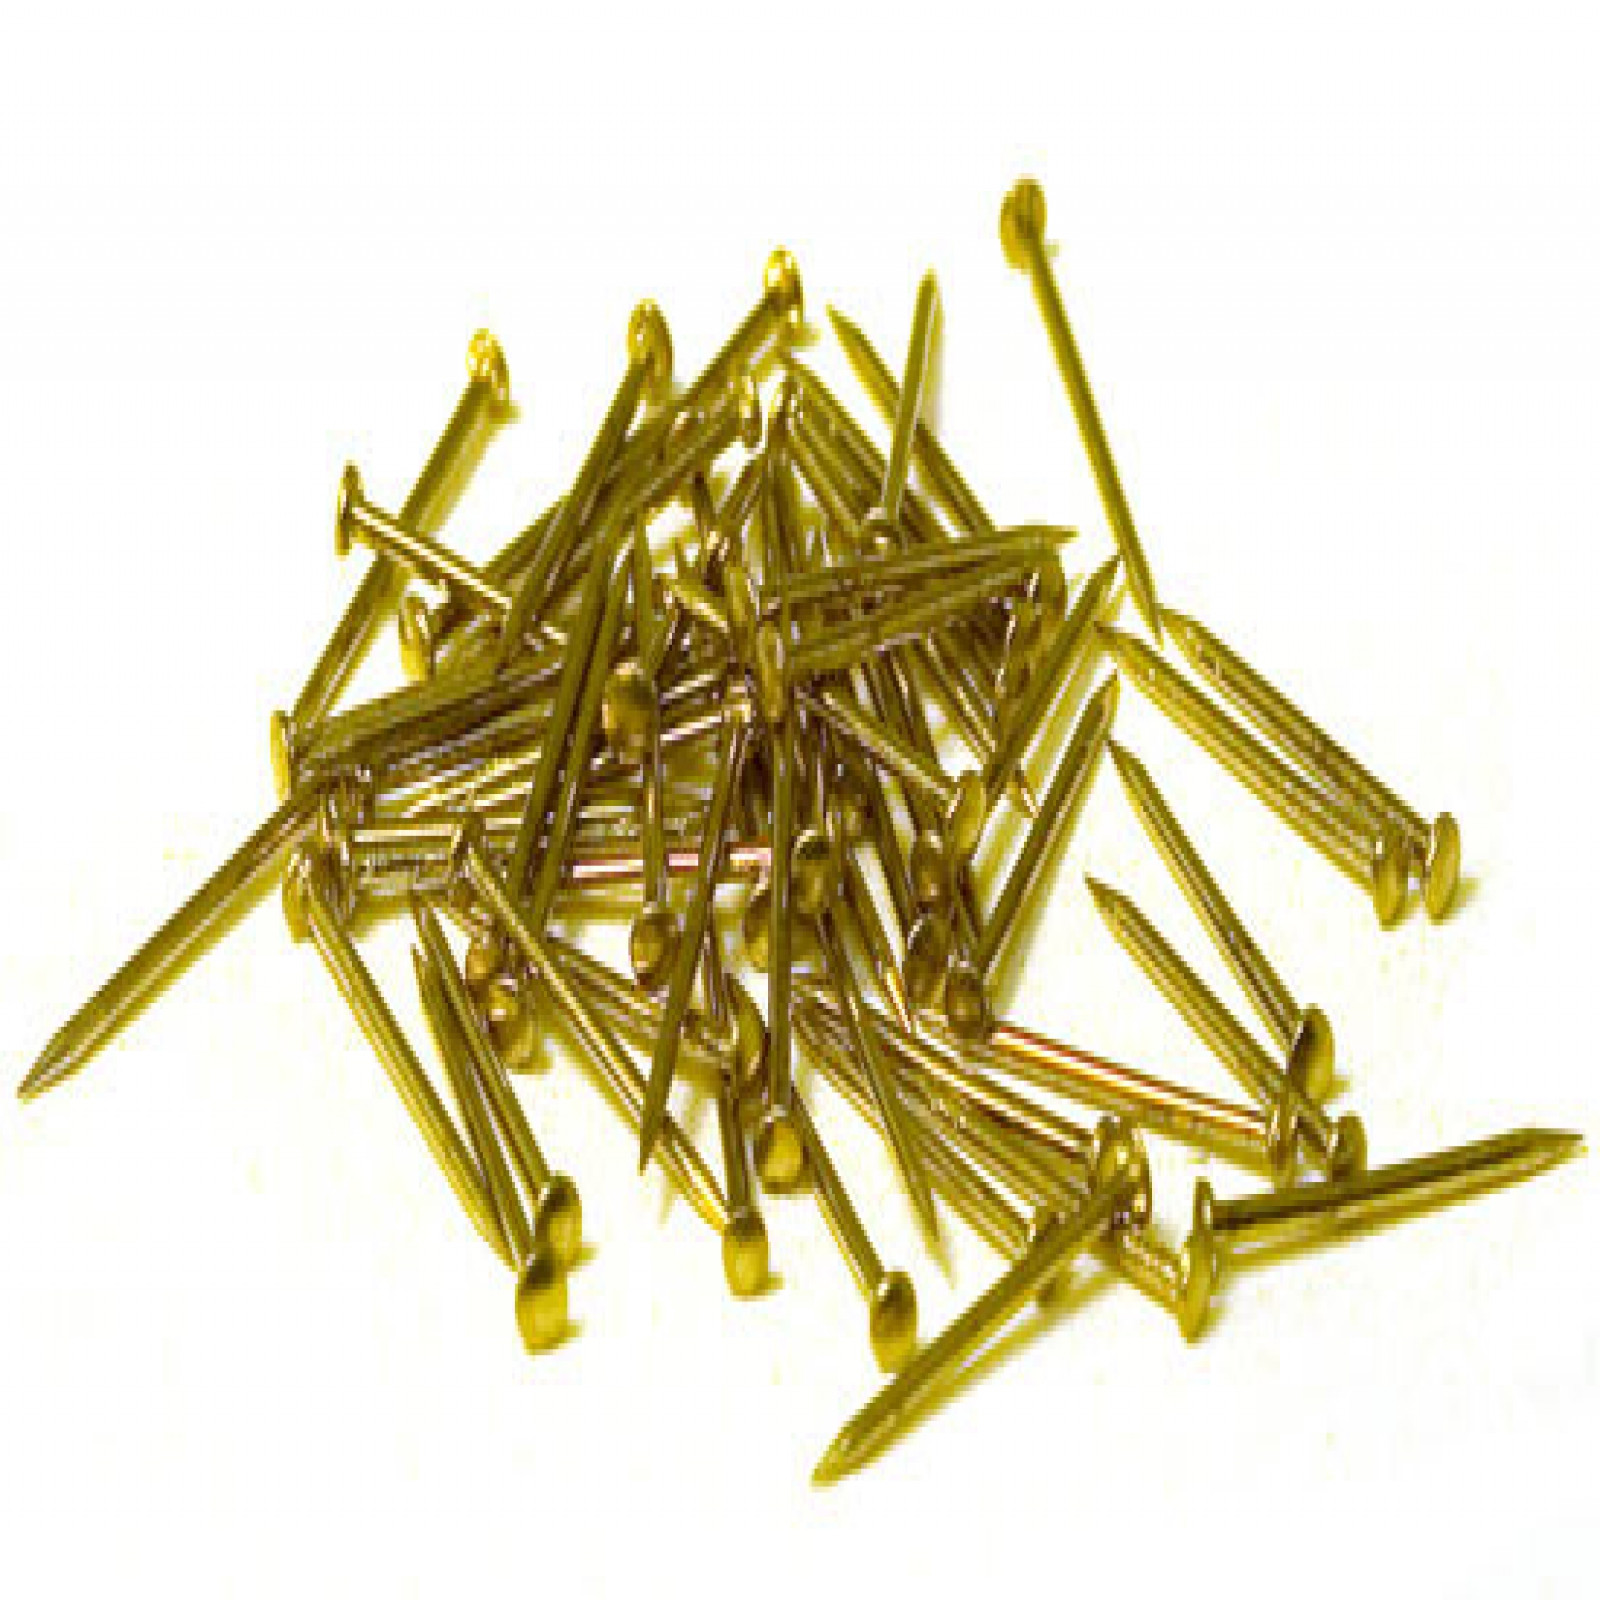 NAILS,  Brass .028 x 5/16 (.7x8mm) 1500/pack